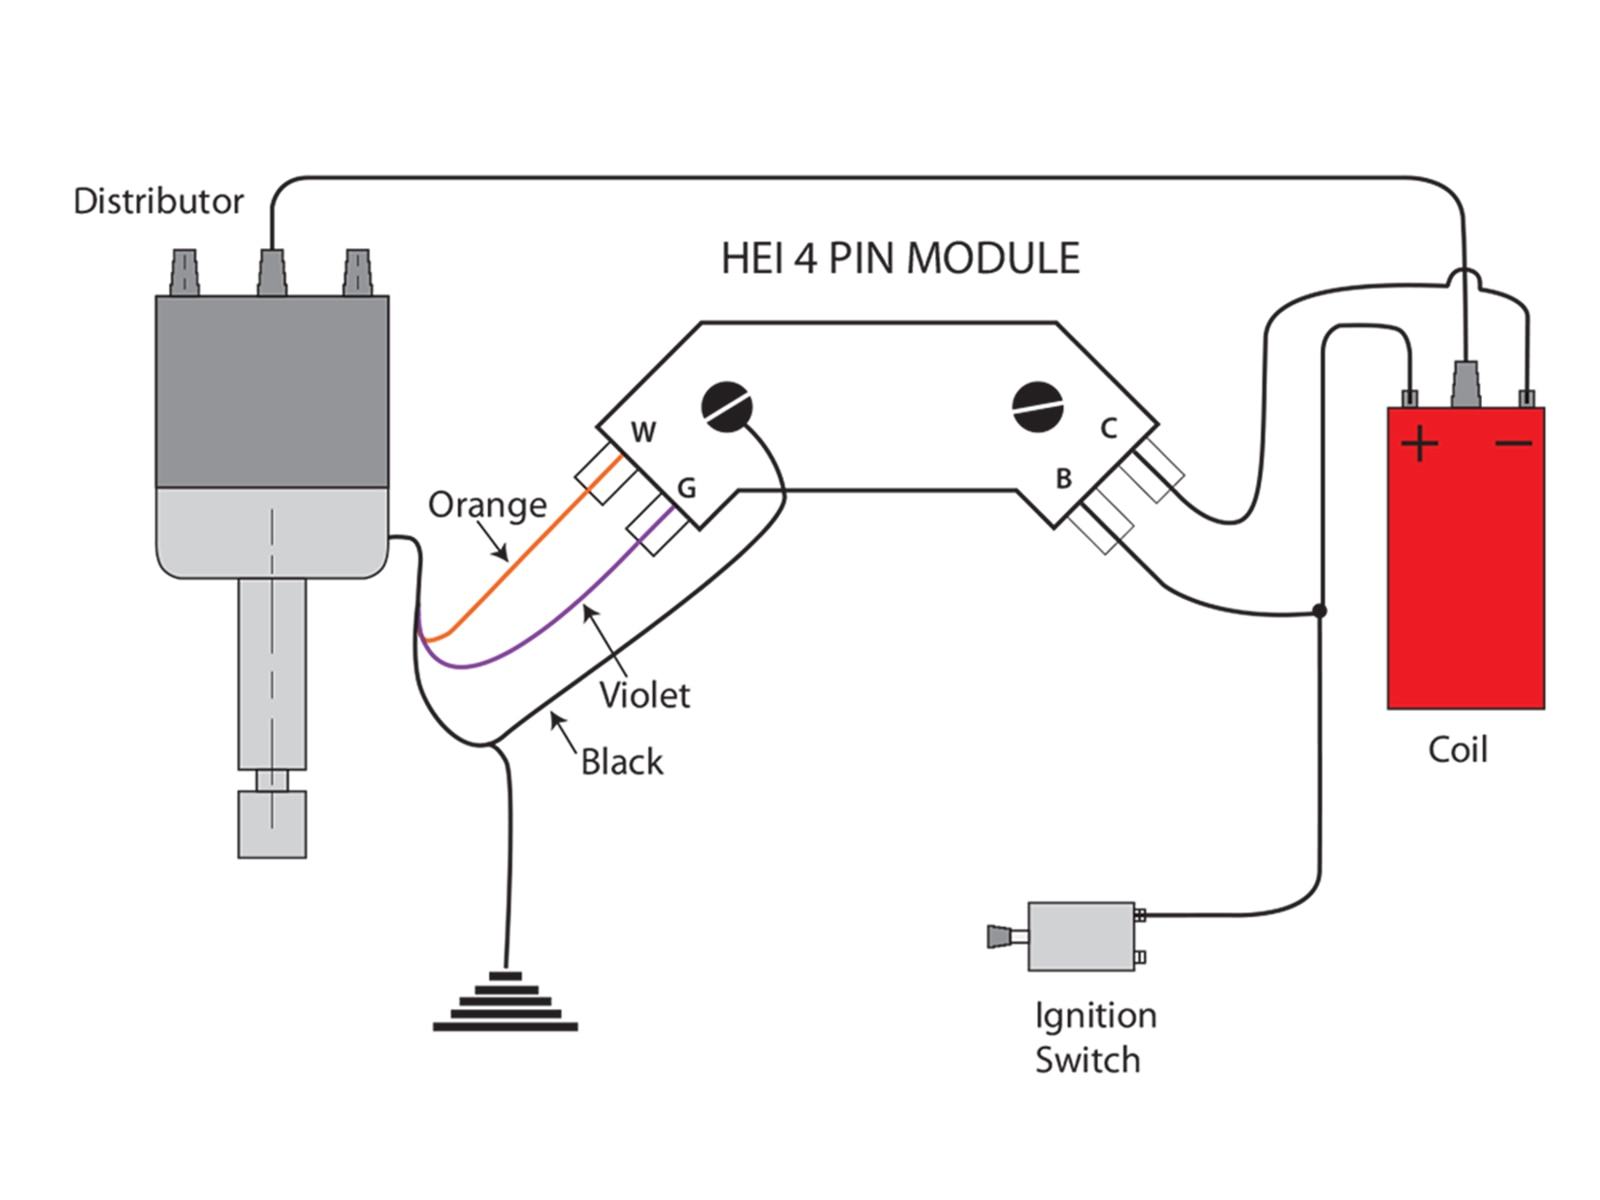 gm hei schematic wiring library ignition system wiring diagram gm ignition module wiring diagram #2